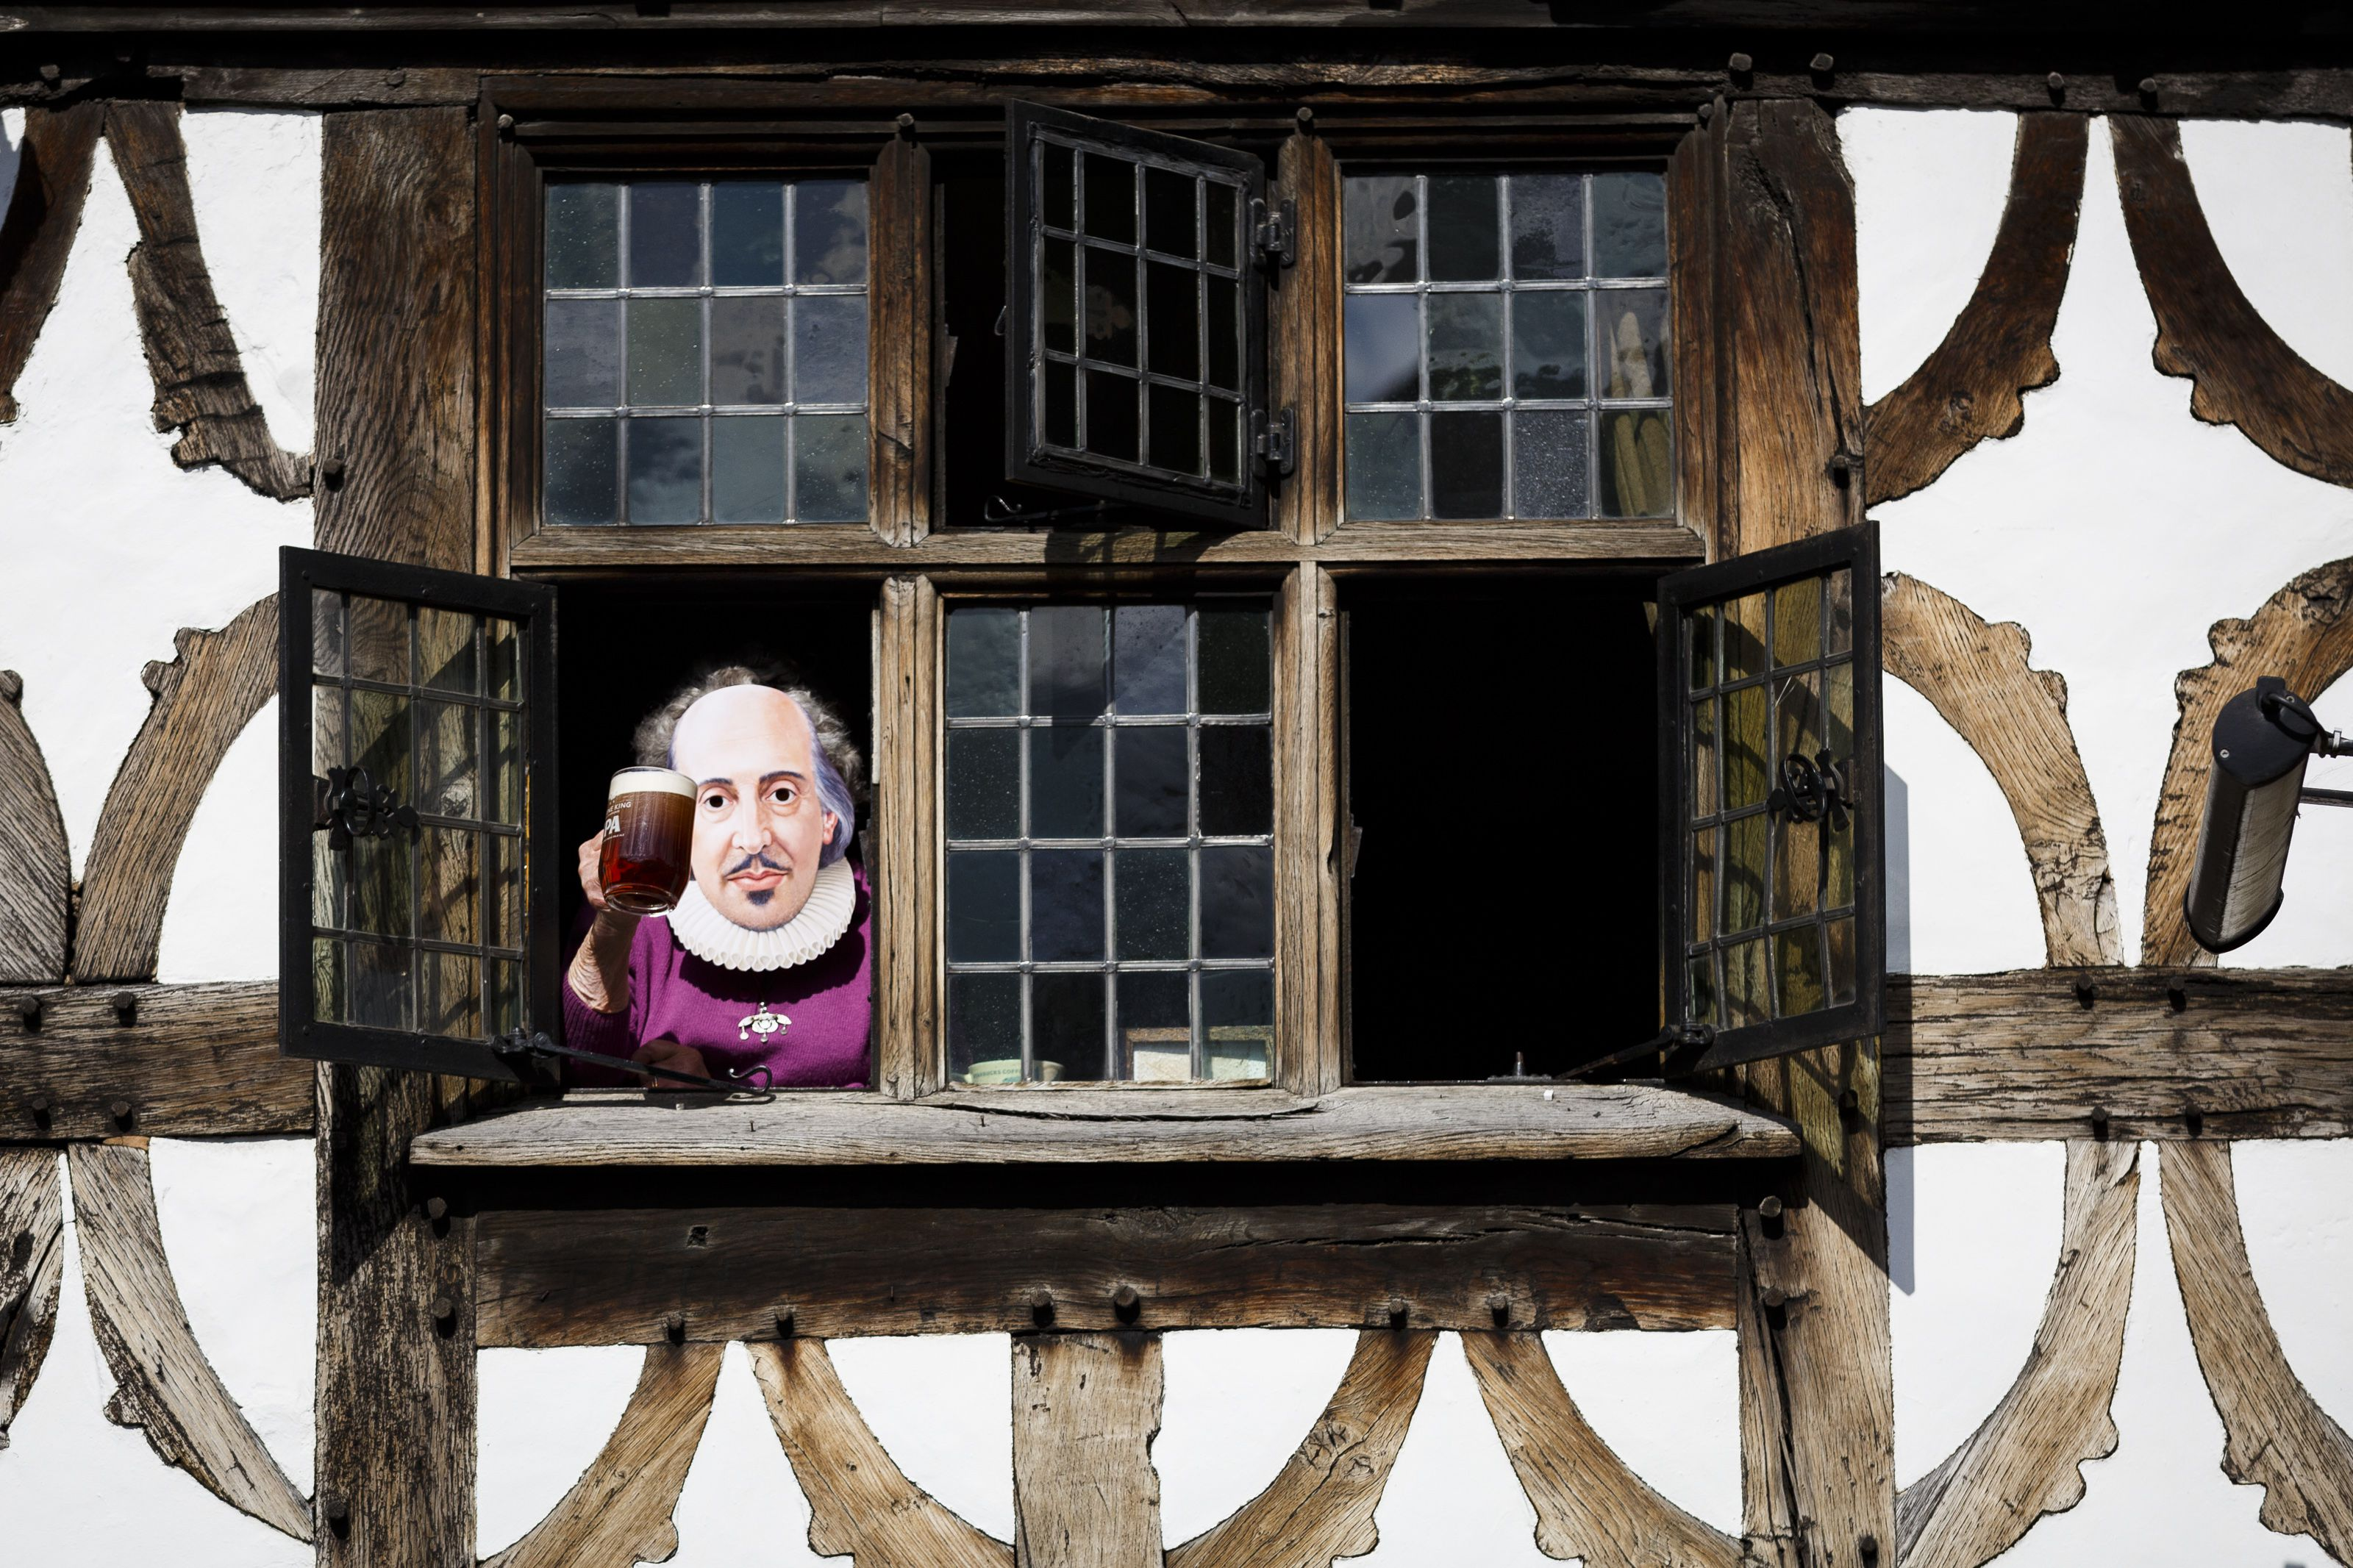 Shakespeare at the window